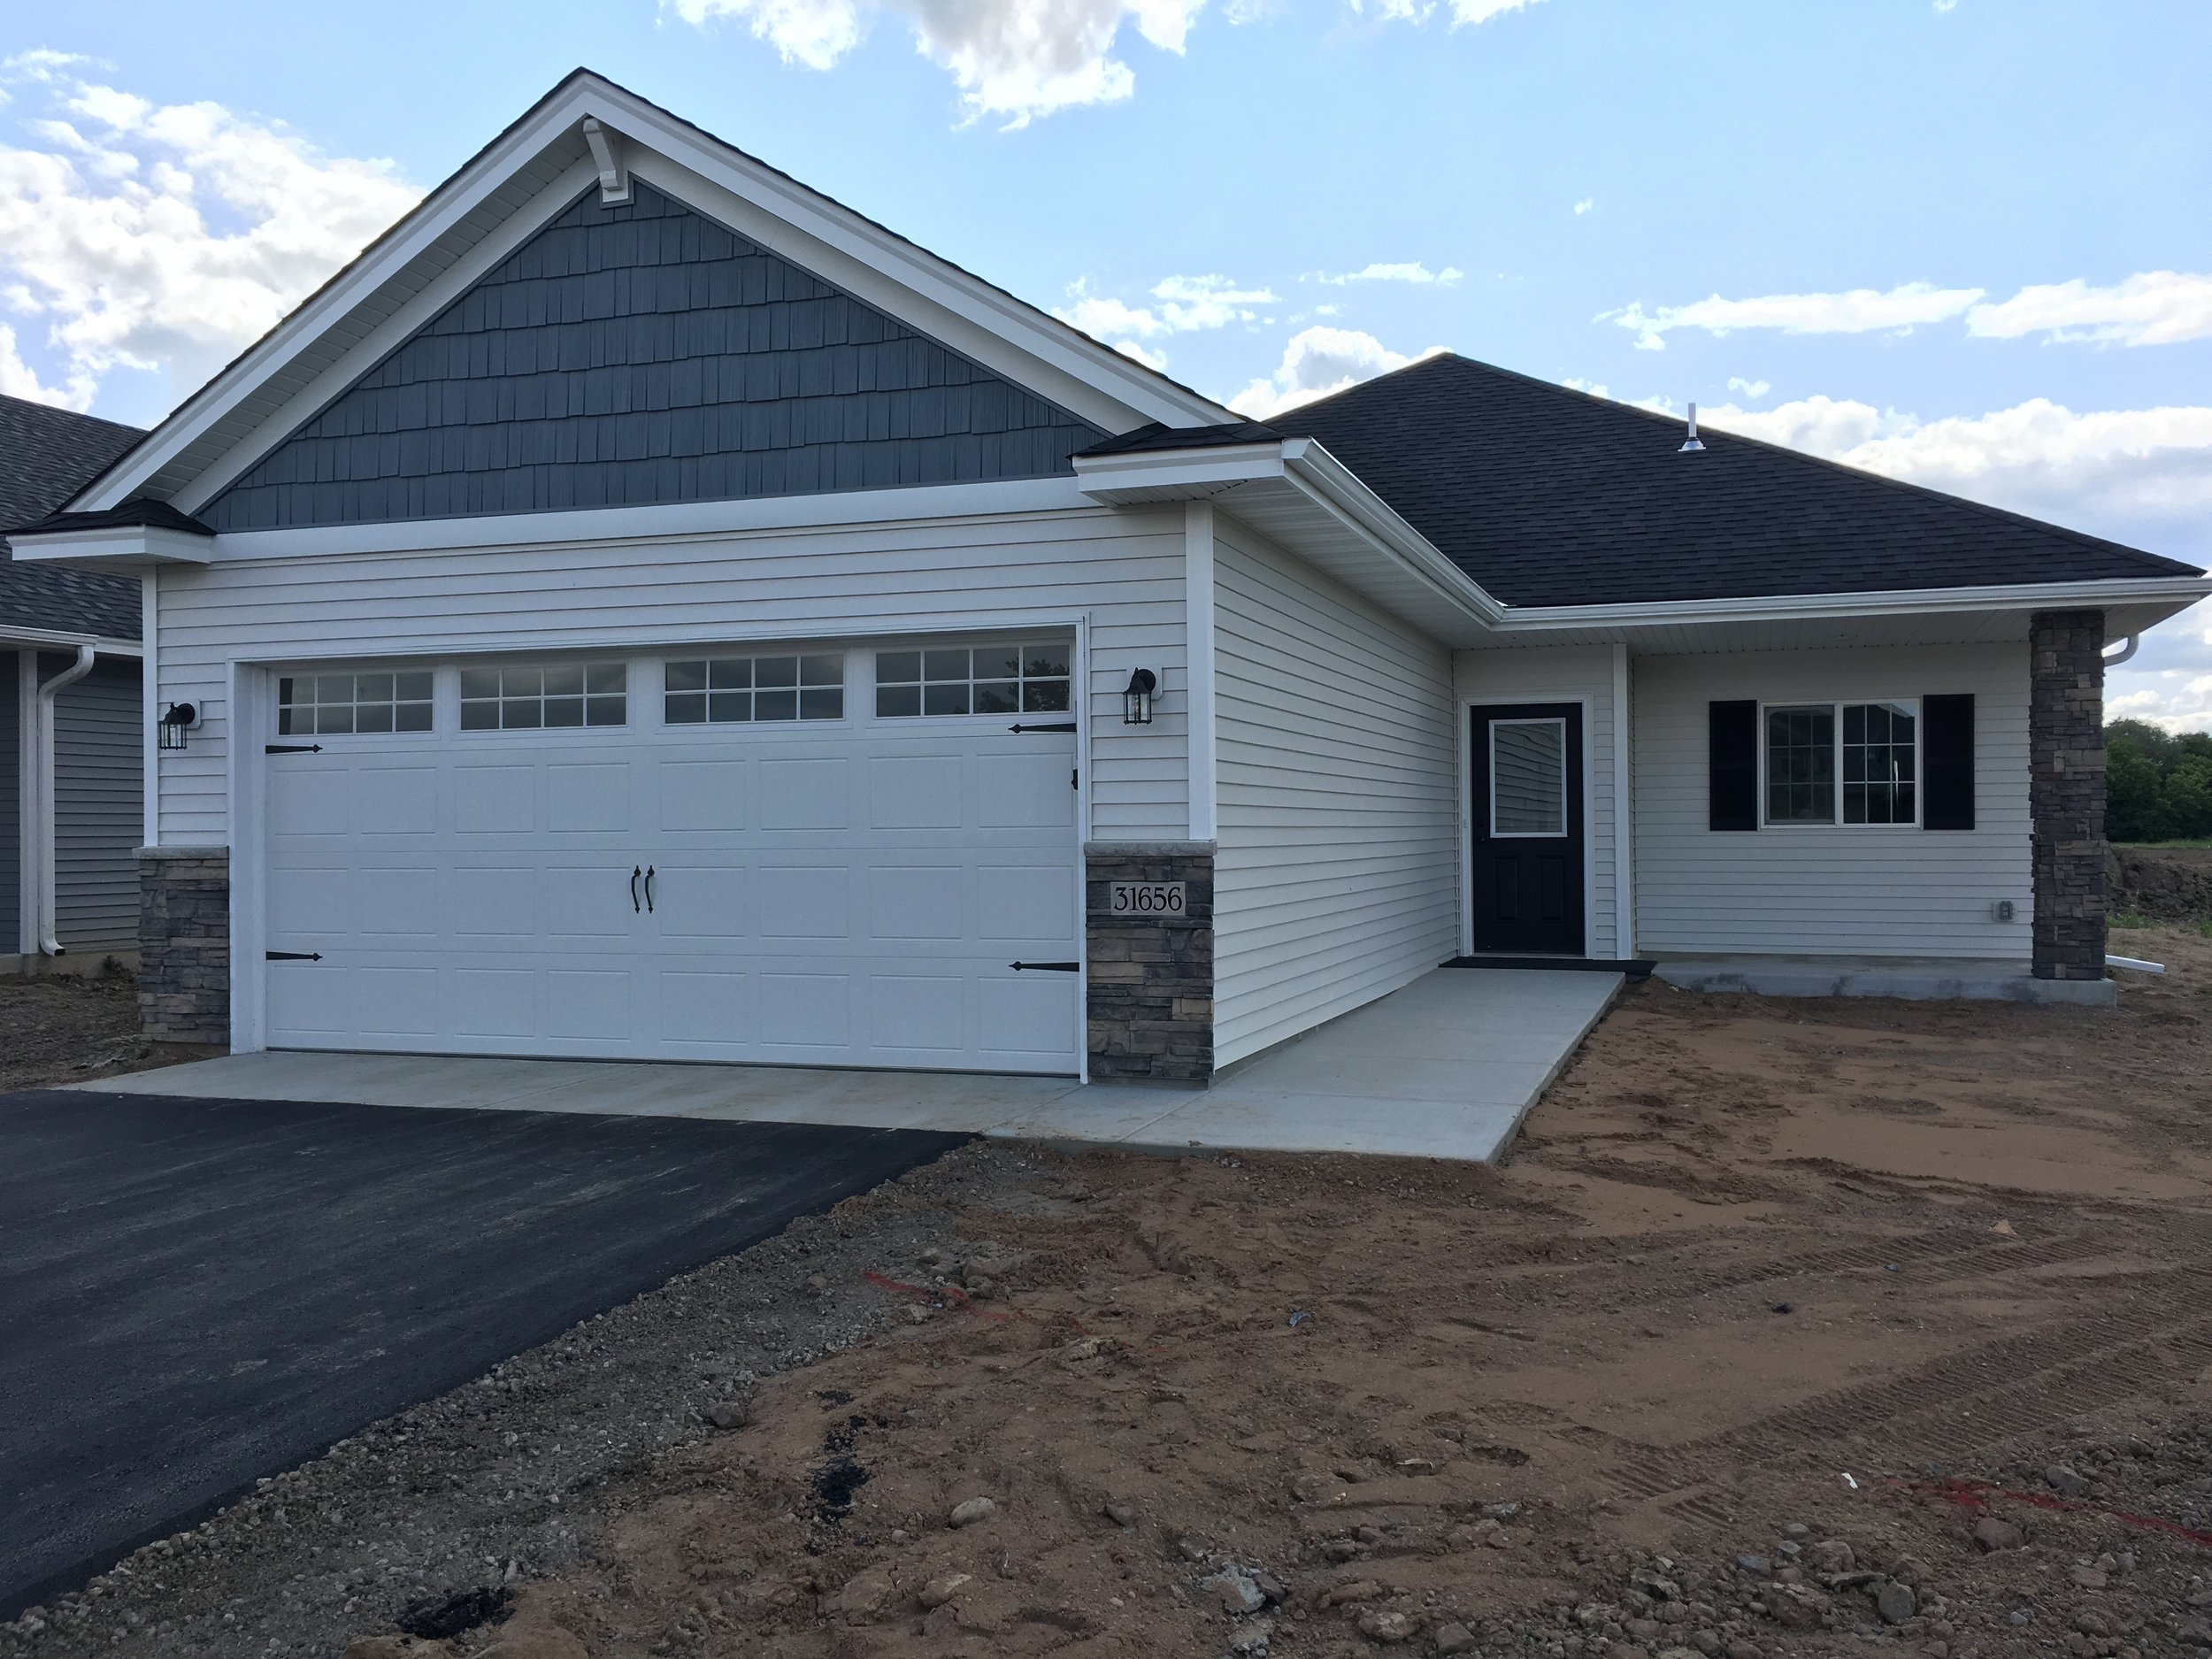 31656 McGuire TrailLindstrom, MN - The Amelia2BR/2BA-1287 FSFOne Story Detached TownhomeAvailable for Purchase